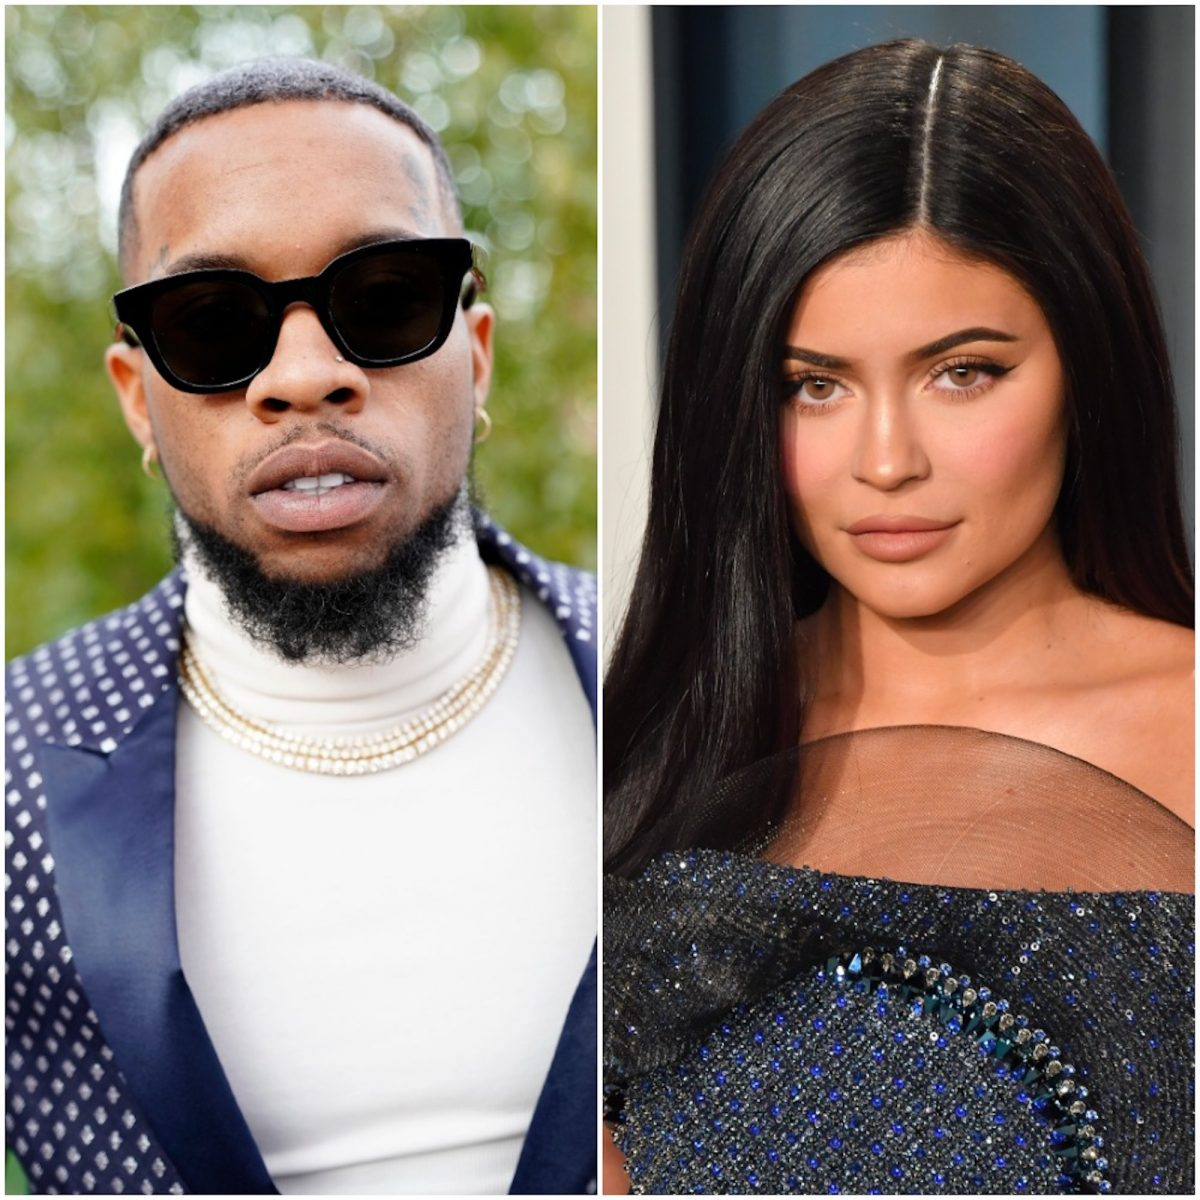 Tory Lanez and Kylie Jenner